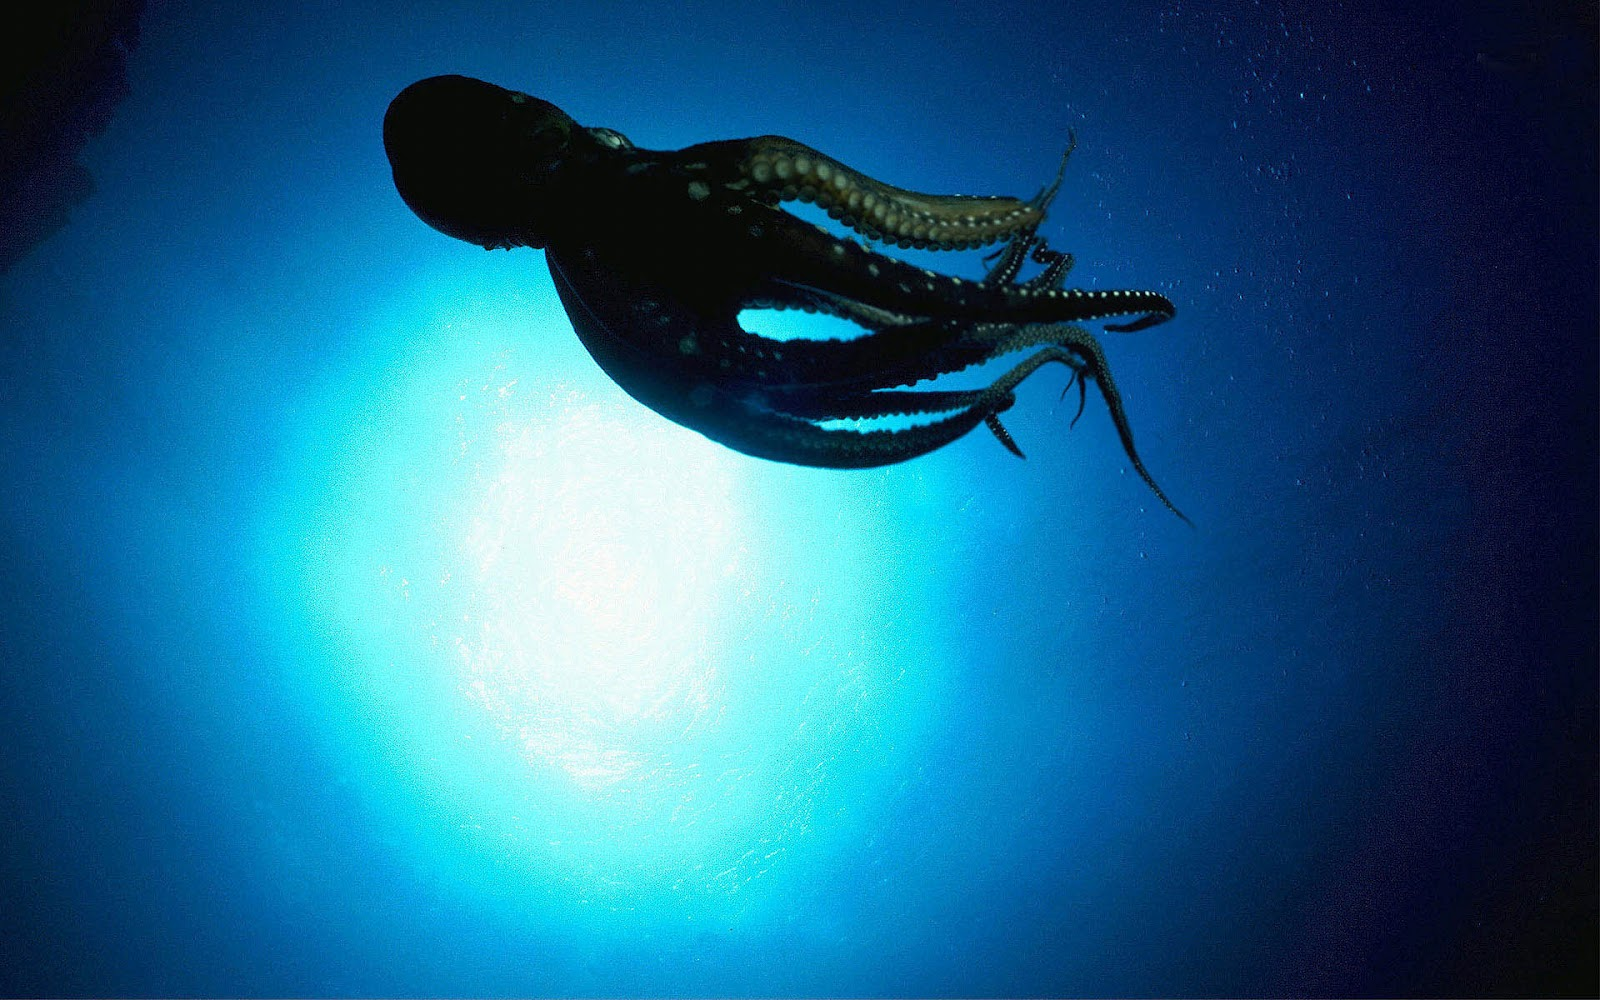 hd-octopus-wallpaper-with-the-picture-of-a-octopus-swimming-underwater    Underwater Octopus